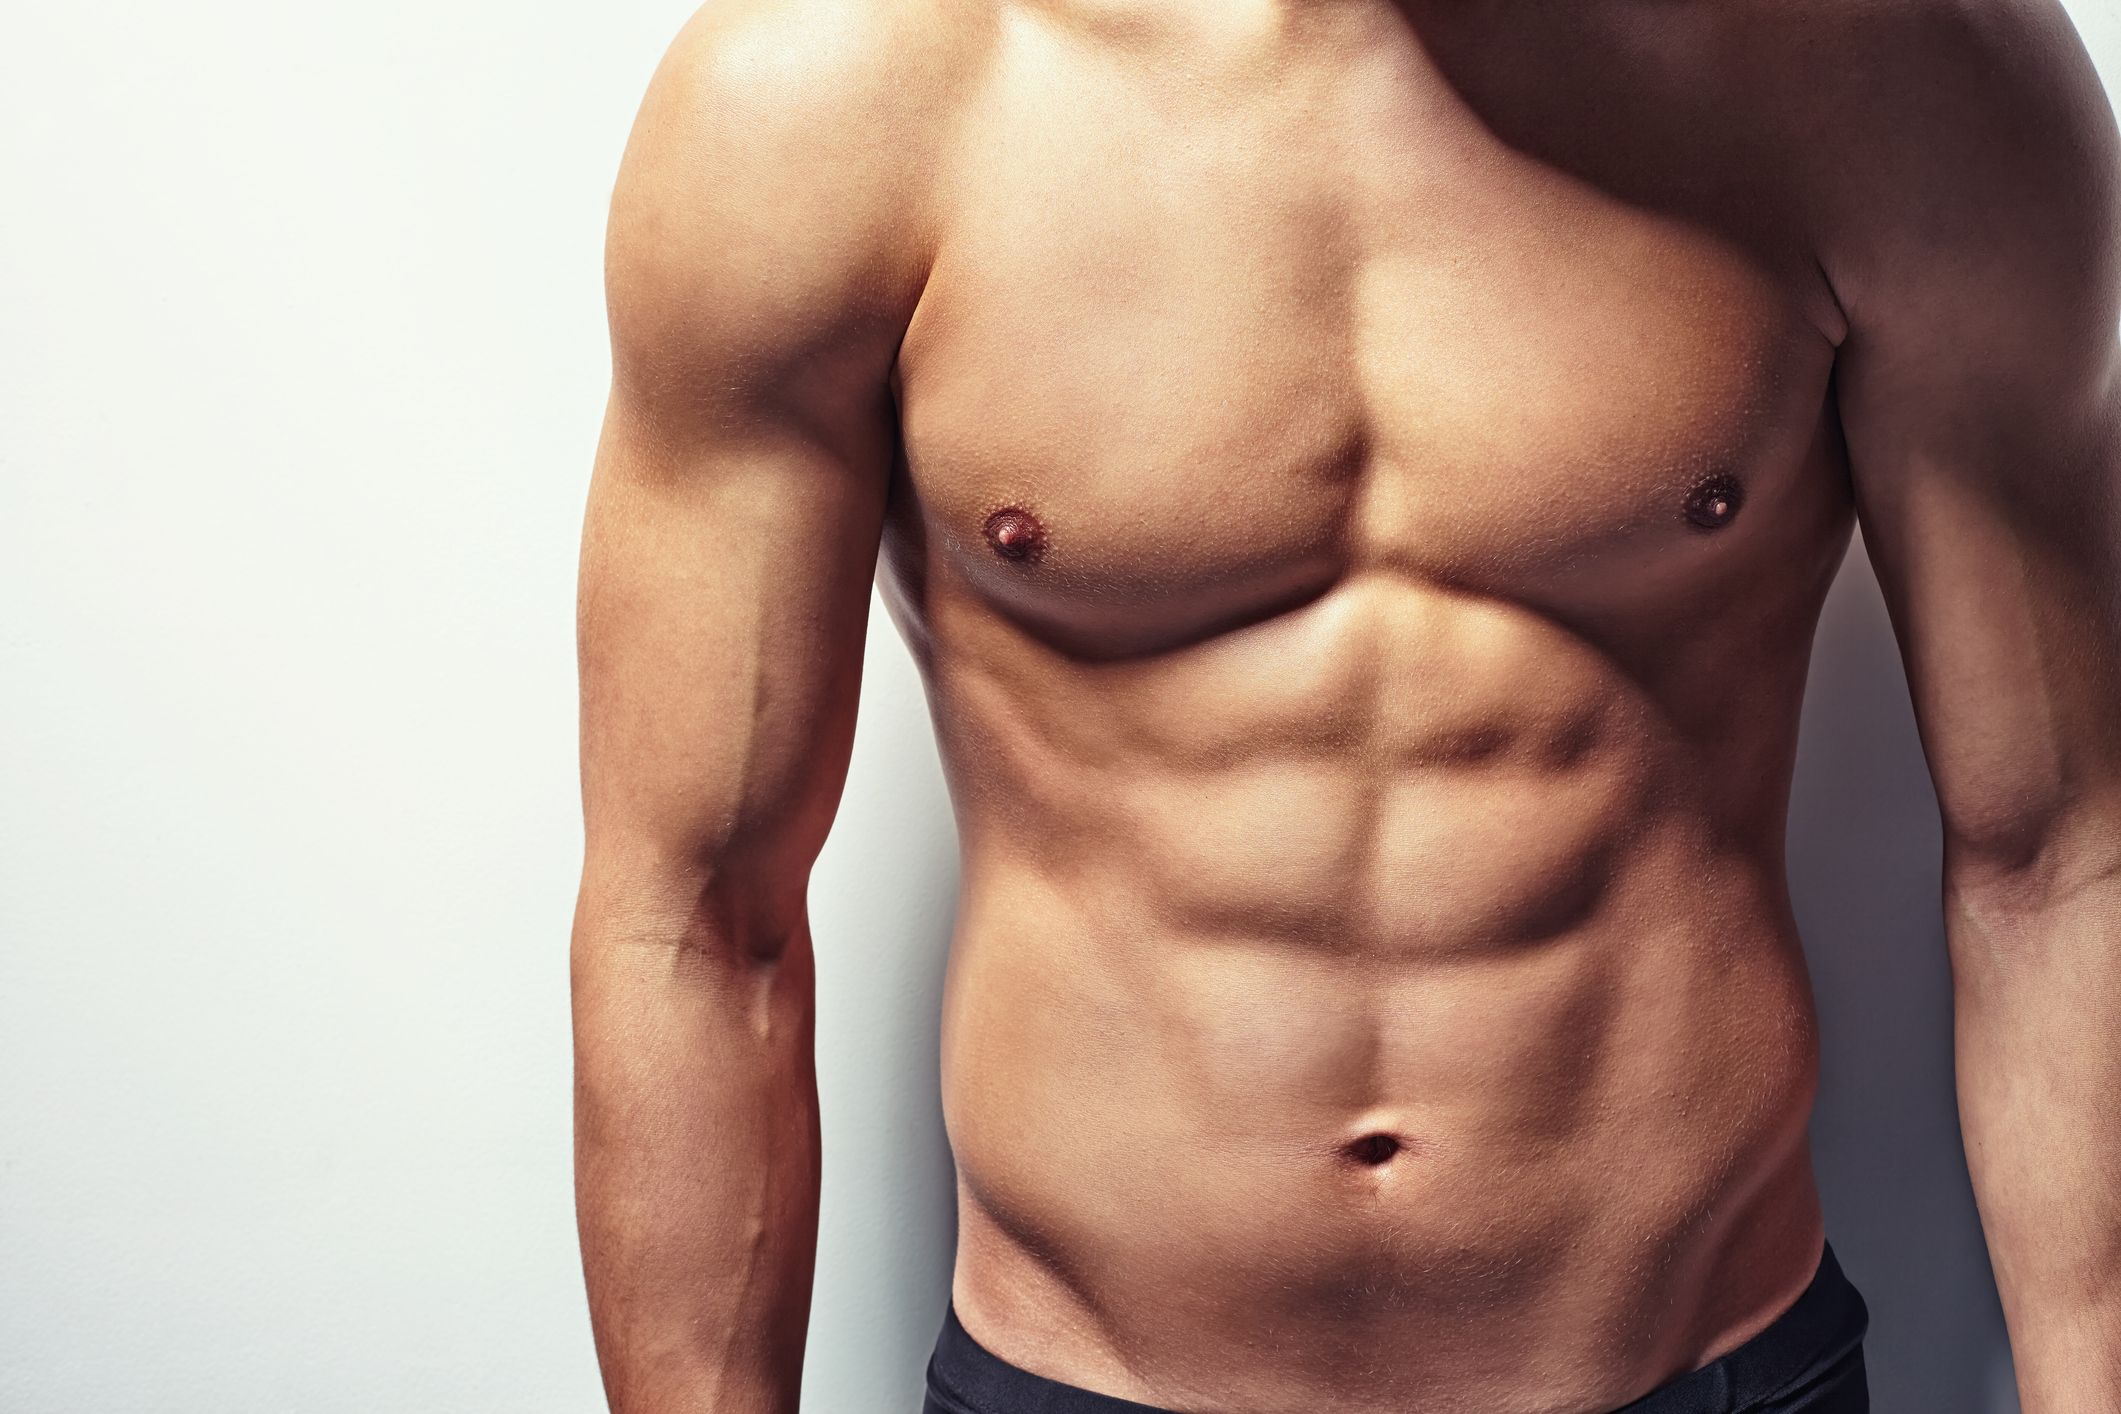 What Body Fat Percentage Should I Be To See Abs?